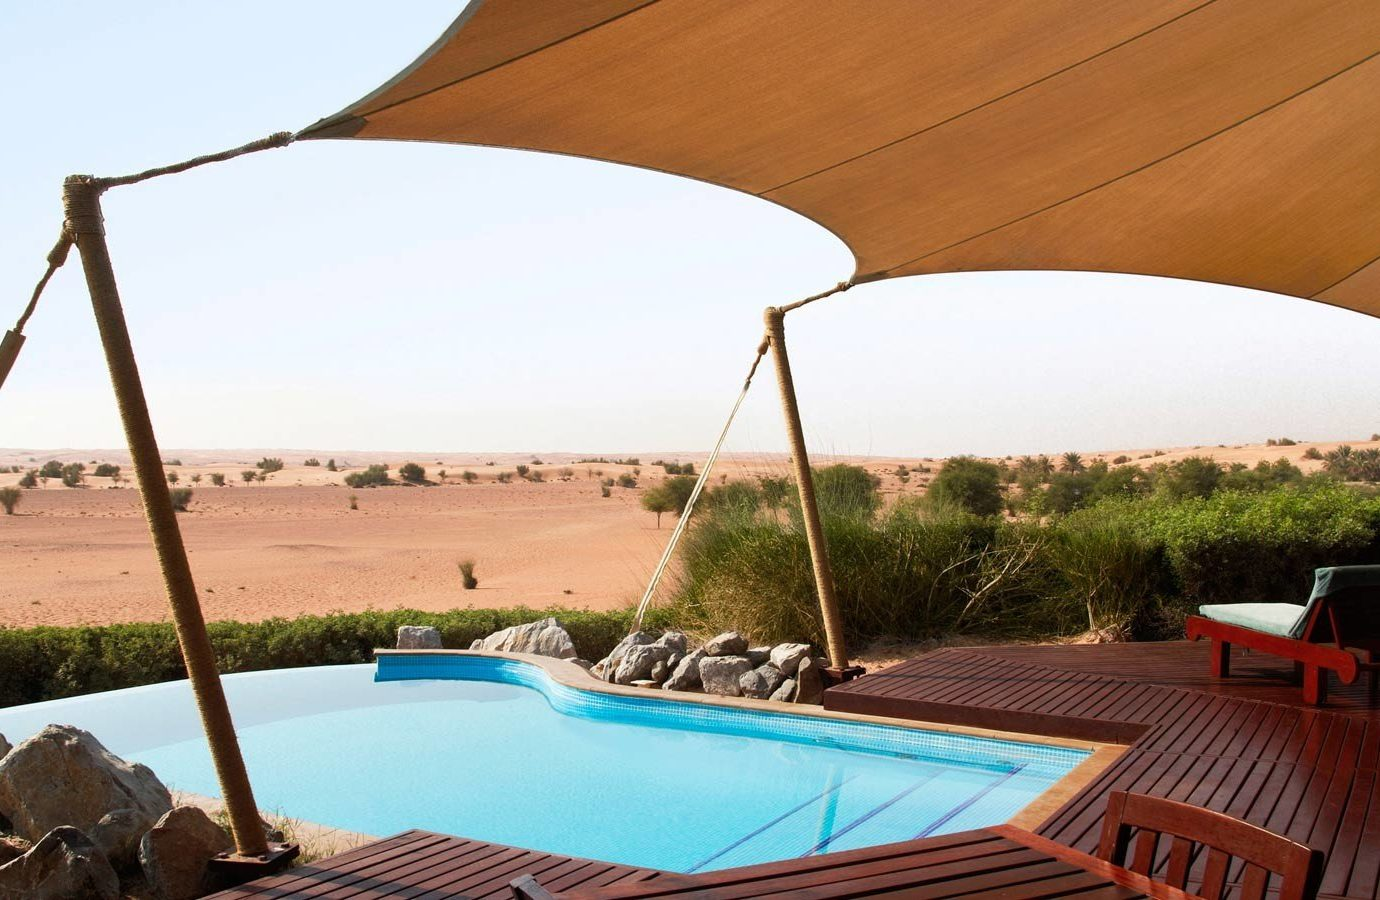 Dubai Hotels Luxury Travel Middle East property shade tent swimming pool vacation canopy leisure outdoor structure real estate estate sunlounger landscape roof outdoor furniture umbrella Resort backyard Villa